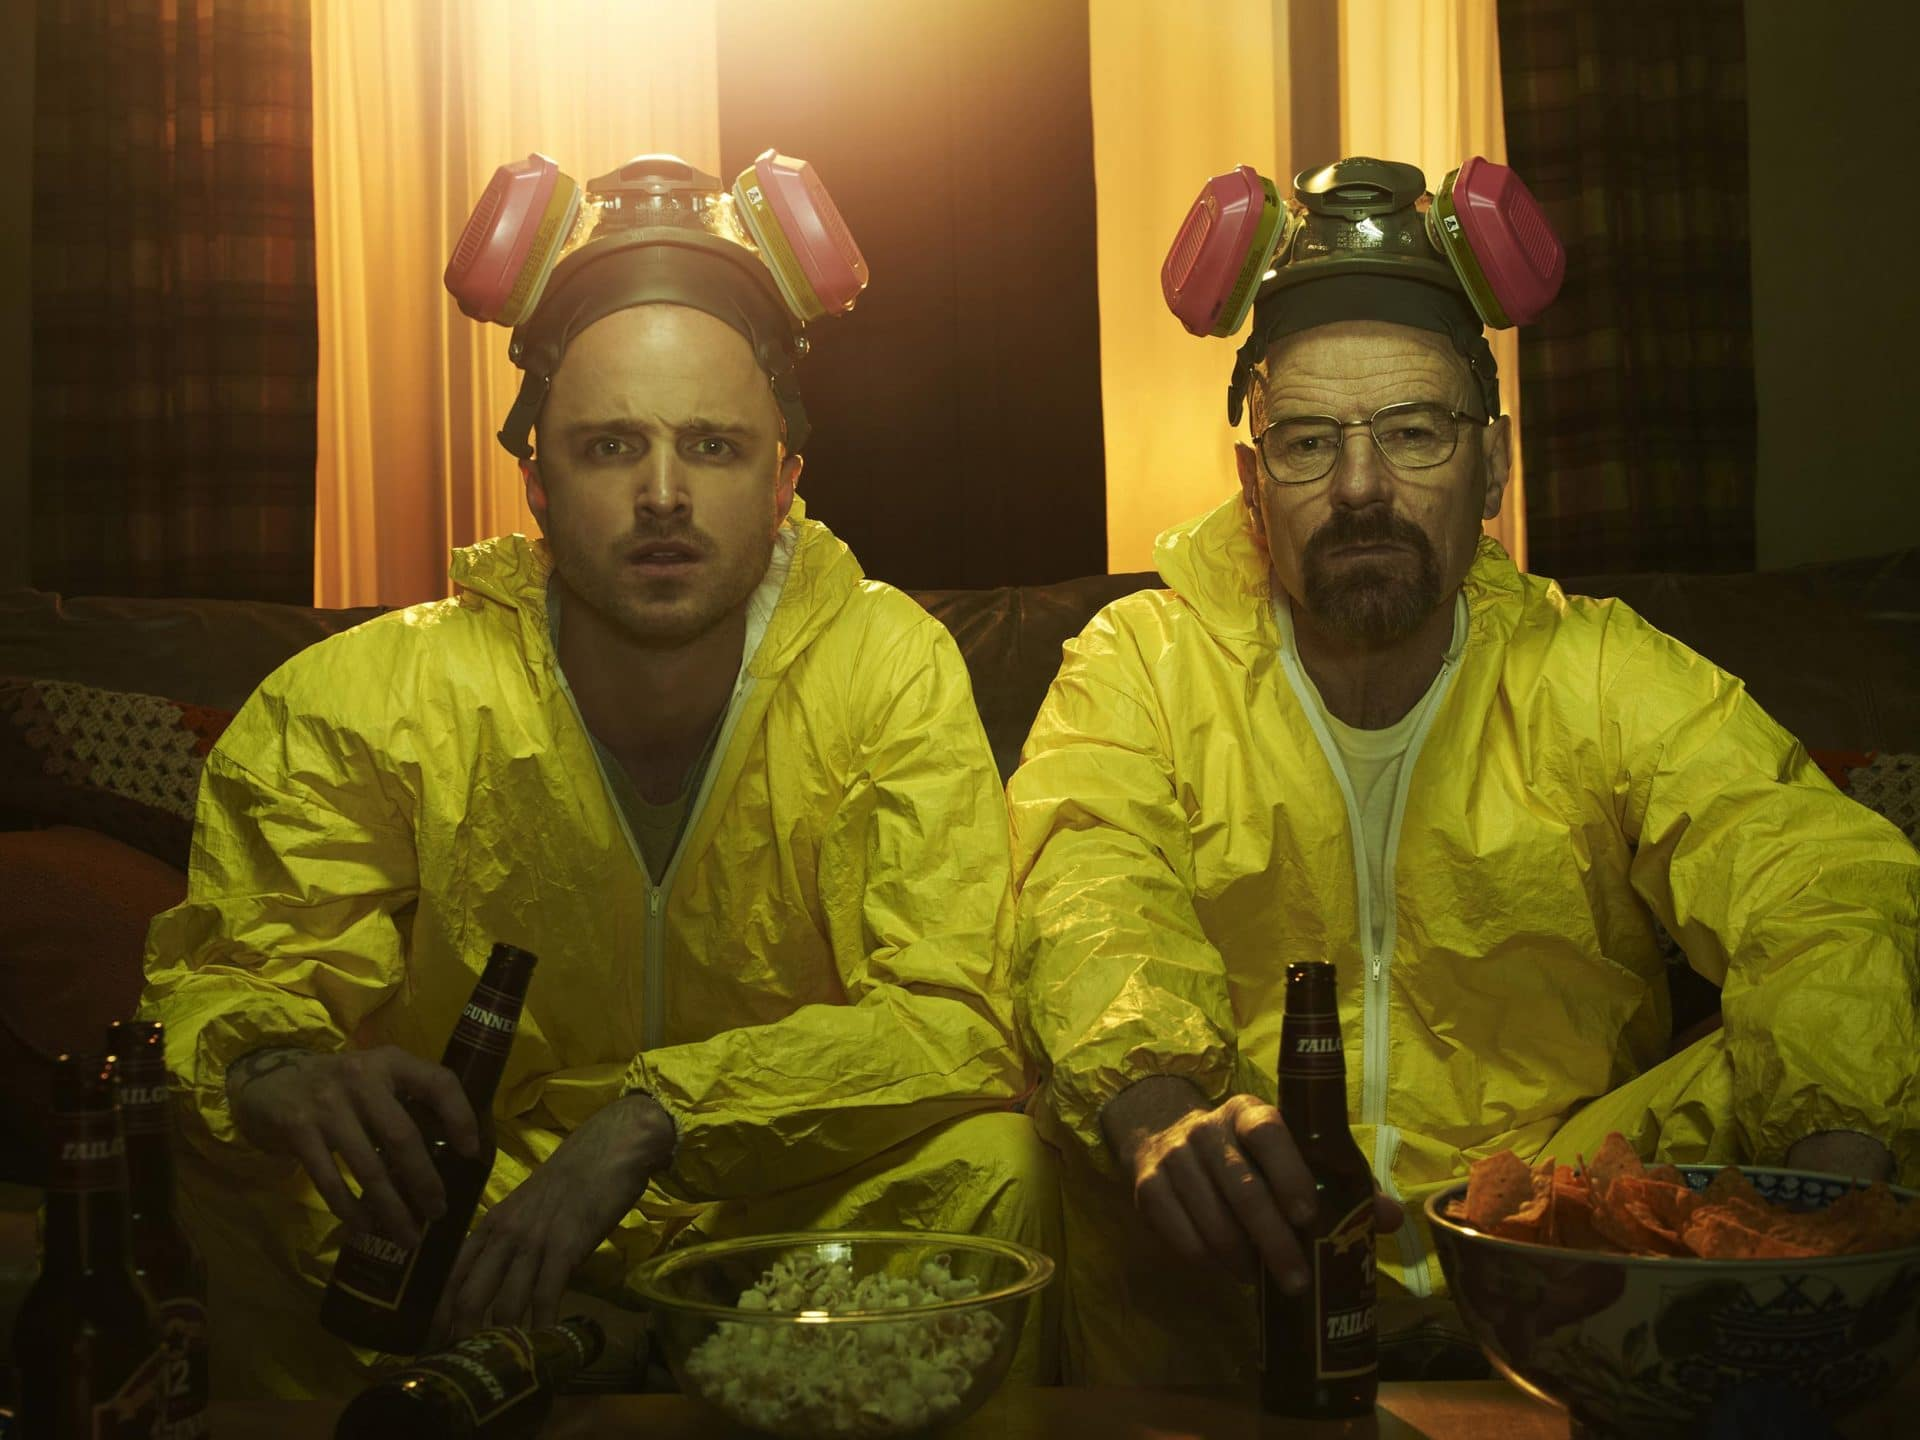 È in lavorazione un film di Breaking Bad di Vince Gilligan